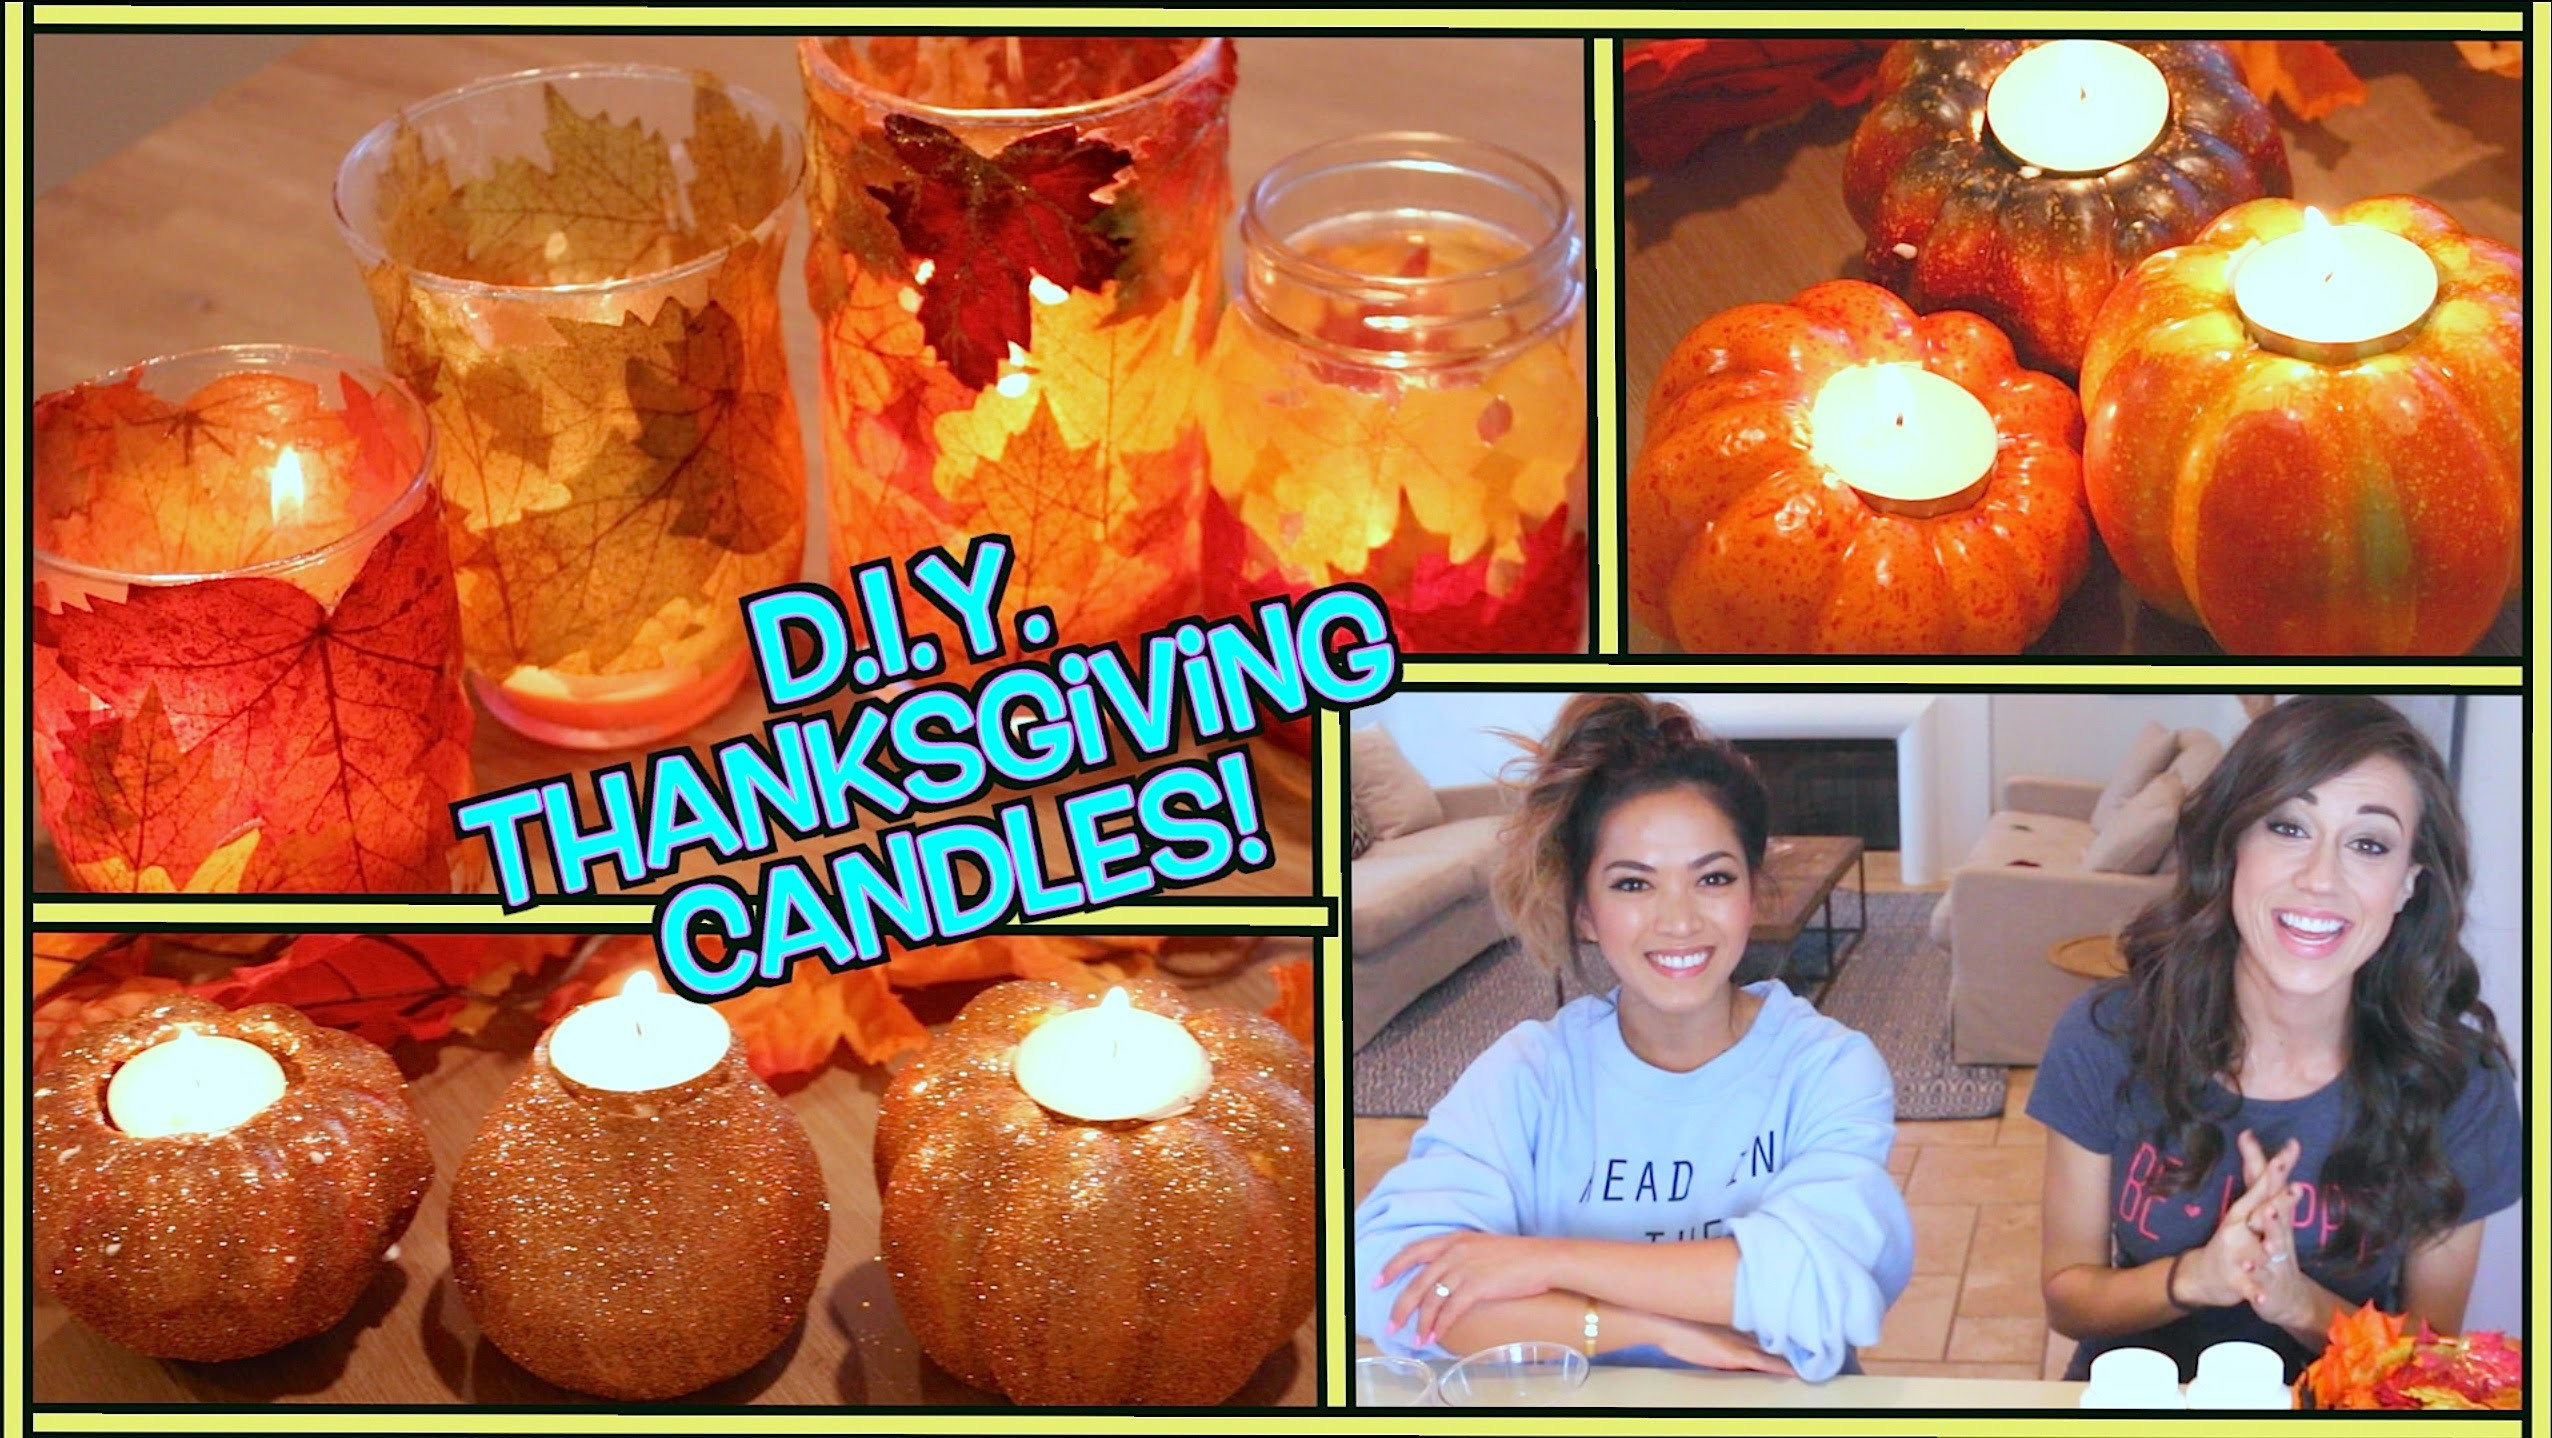 D.I.Y. THANKSGIVING CANDLES!  w. ThatsHeart!